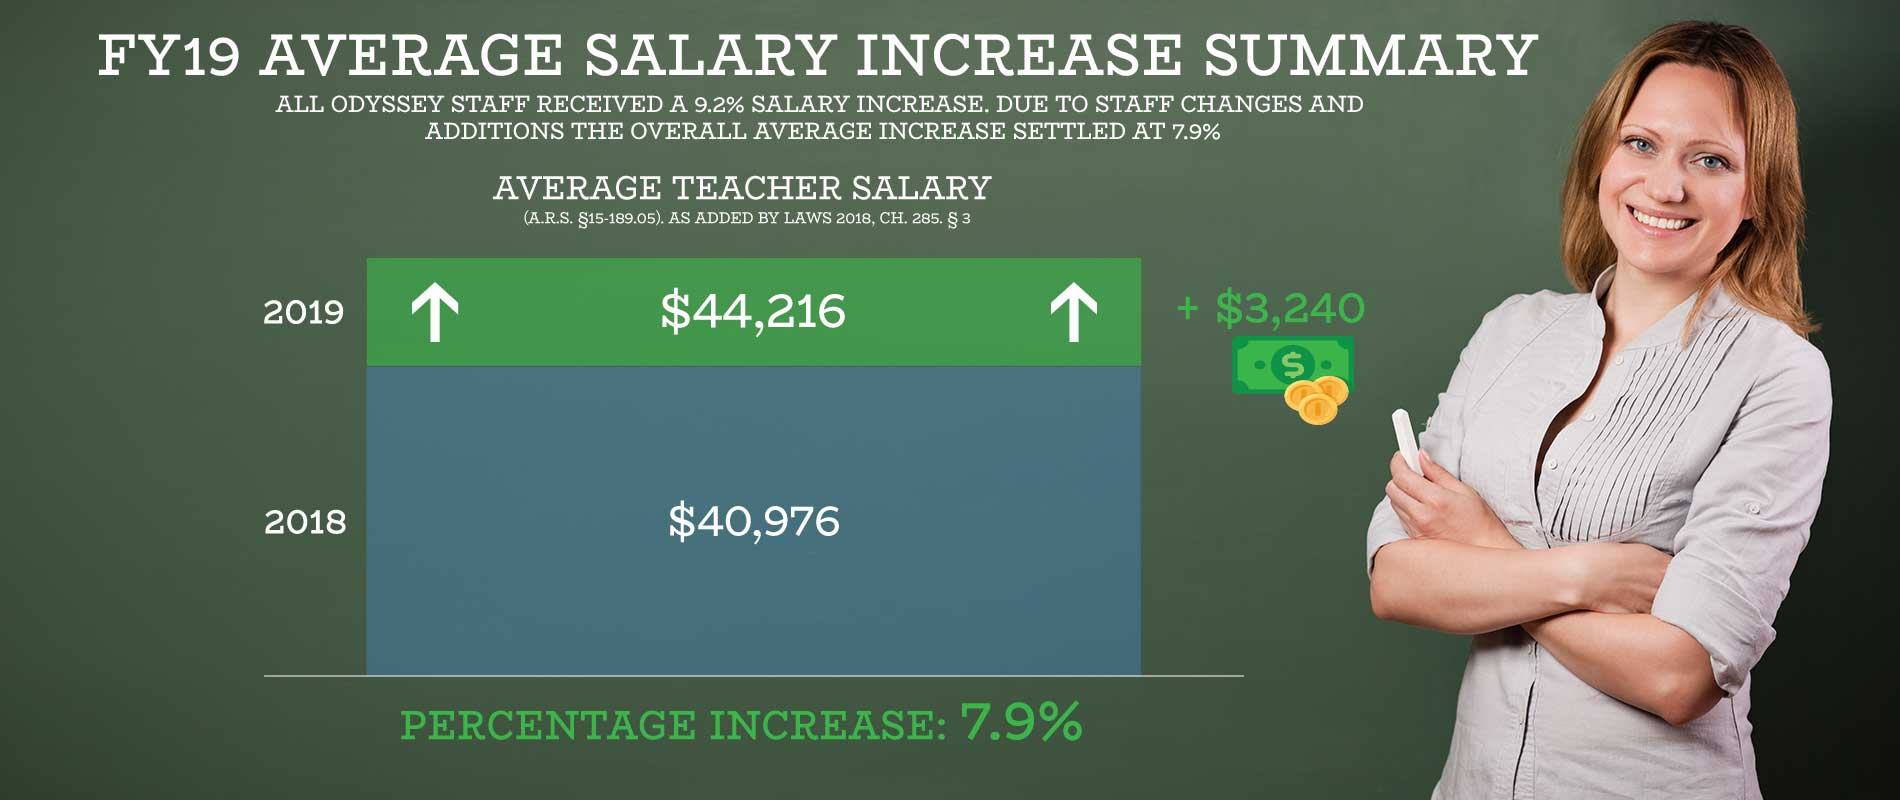 AVERAGE TEACHER SALARY (A.R.S. §15-189.05). as added by Laws 2018, Ch. 285. § 3. Average salary of all teachers employed in budget year 2019: $44,216. Average salary of all teachers employed in prior year 2018: $40,976. Increase in average teacher salary from the prior year 2018: $3,240. Percentage increase: 7.9%